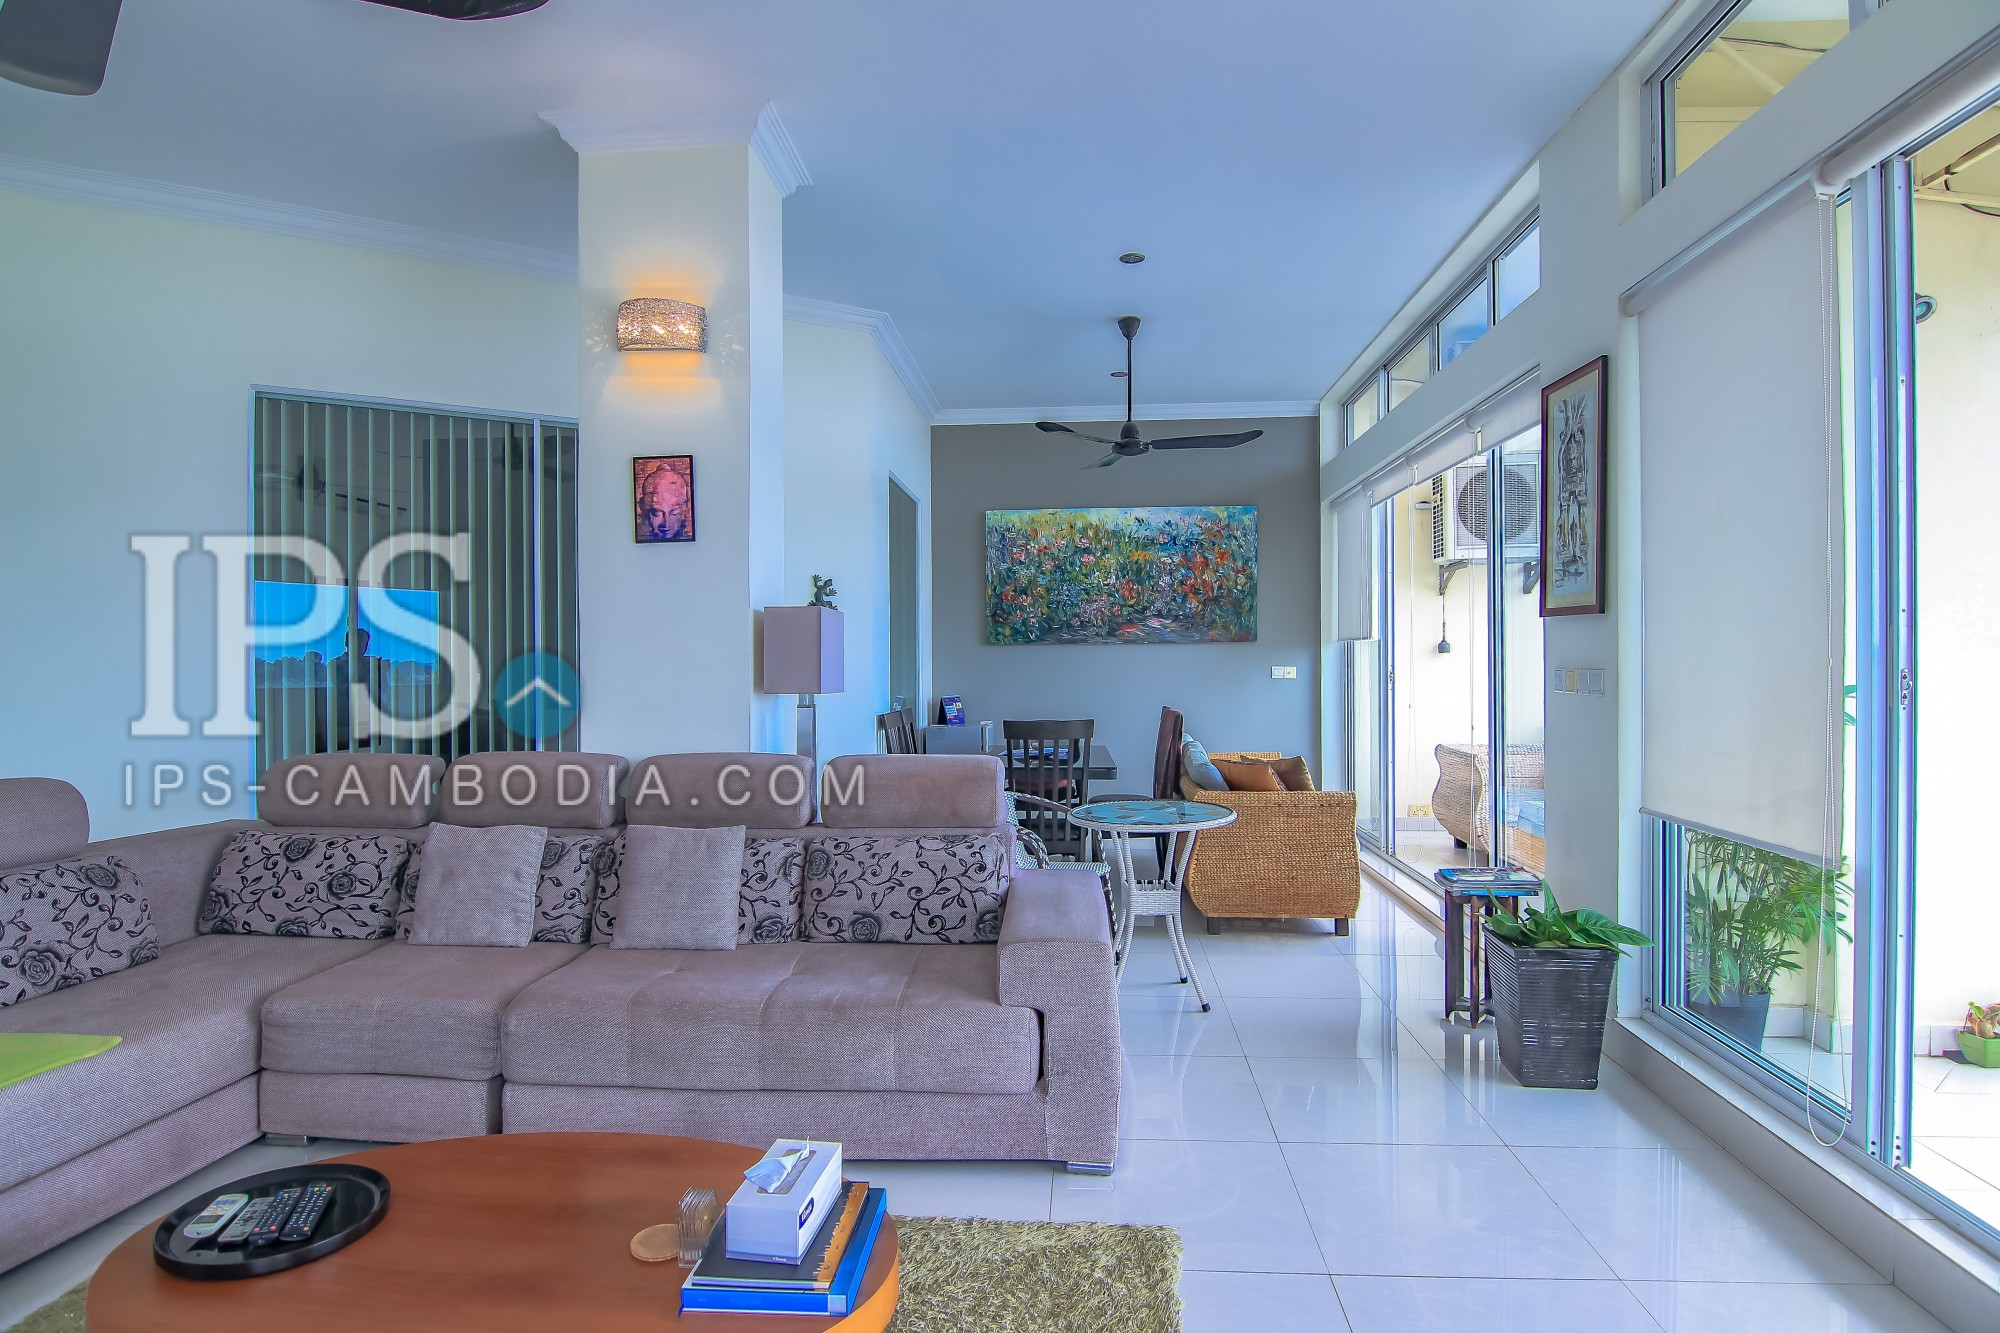 2 Bedrooms Plus 1 Office Renovated Flat For Sale - Riverside